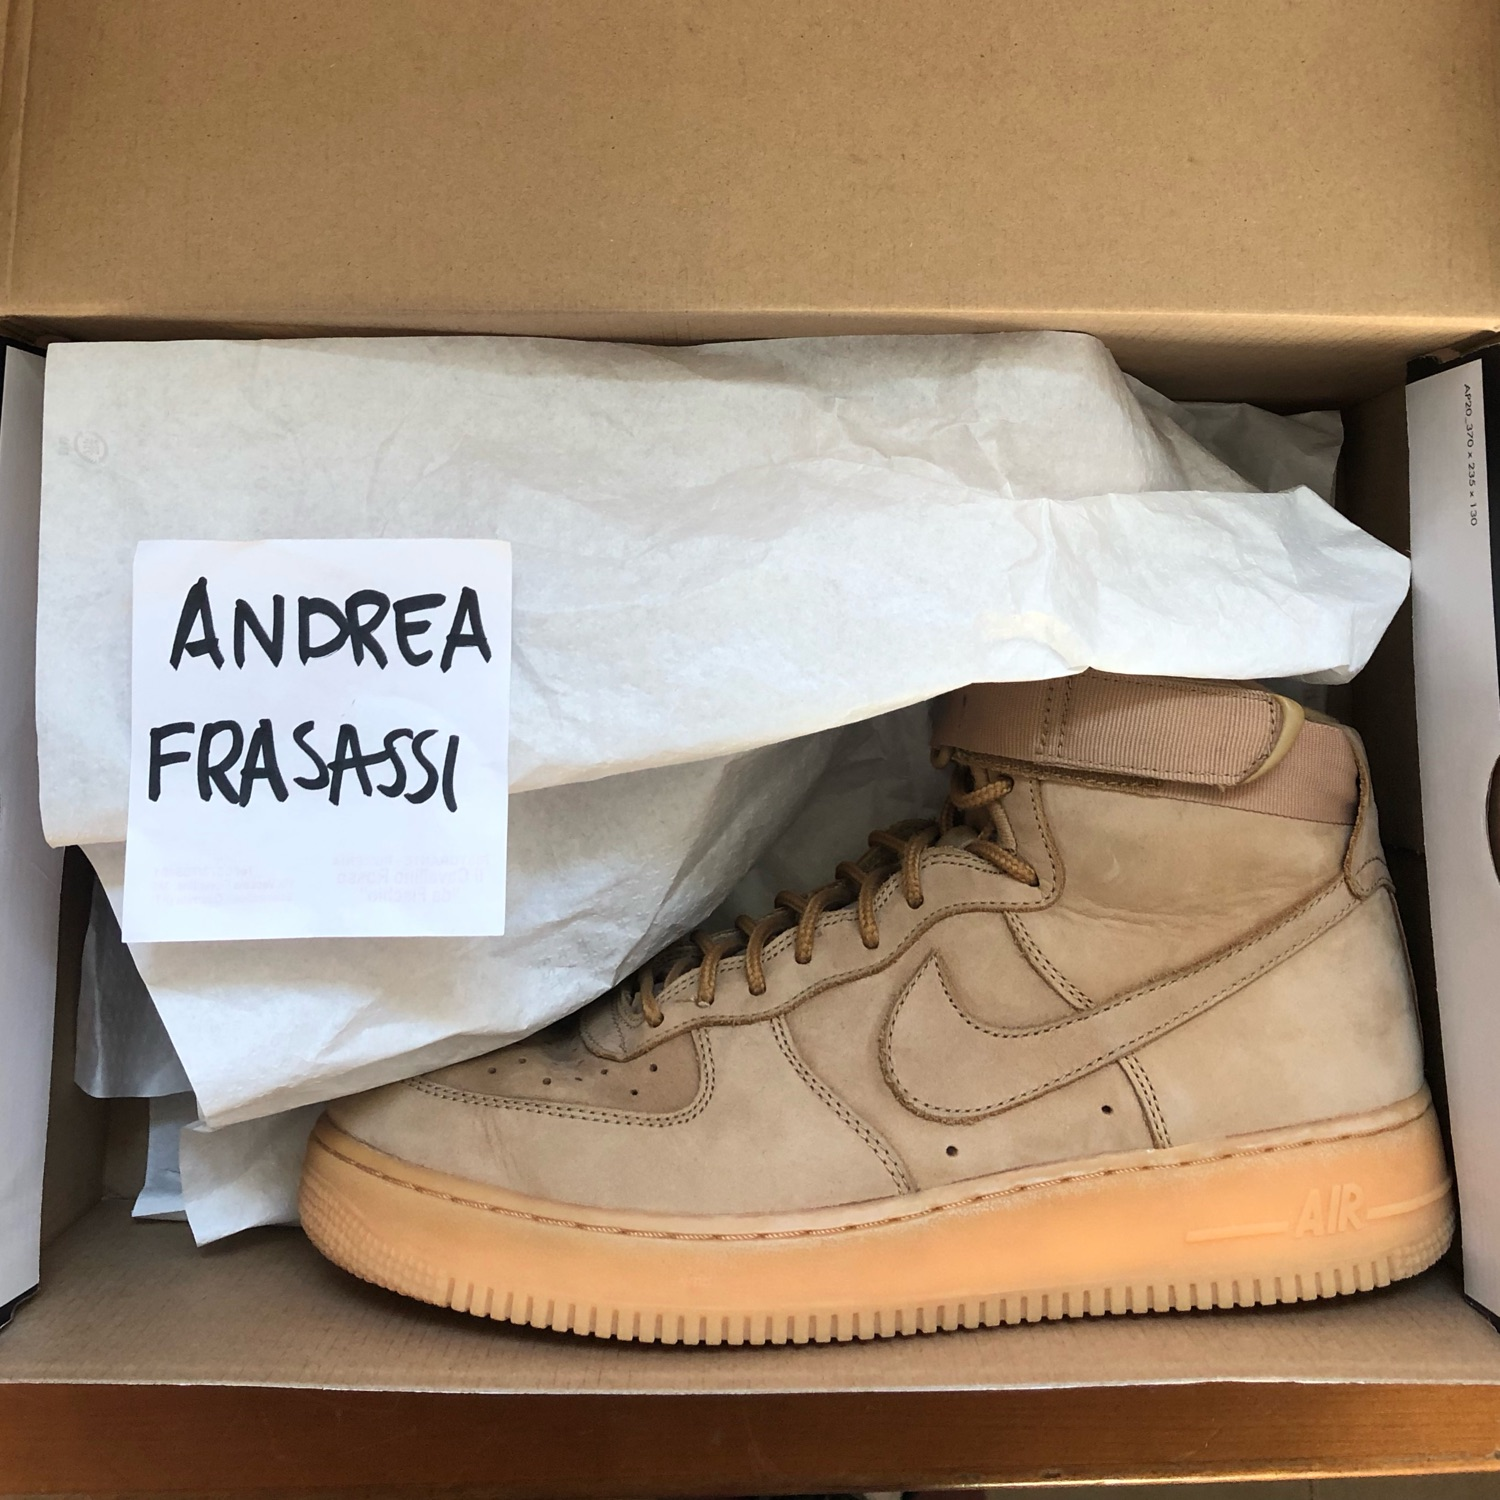 Force Beige Limited Nike Editionaf1 1 Air wkZiPXTuO